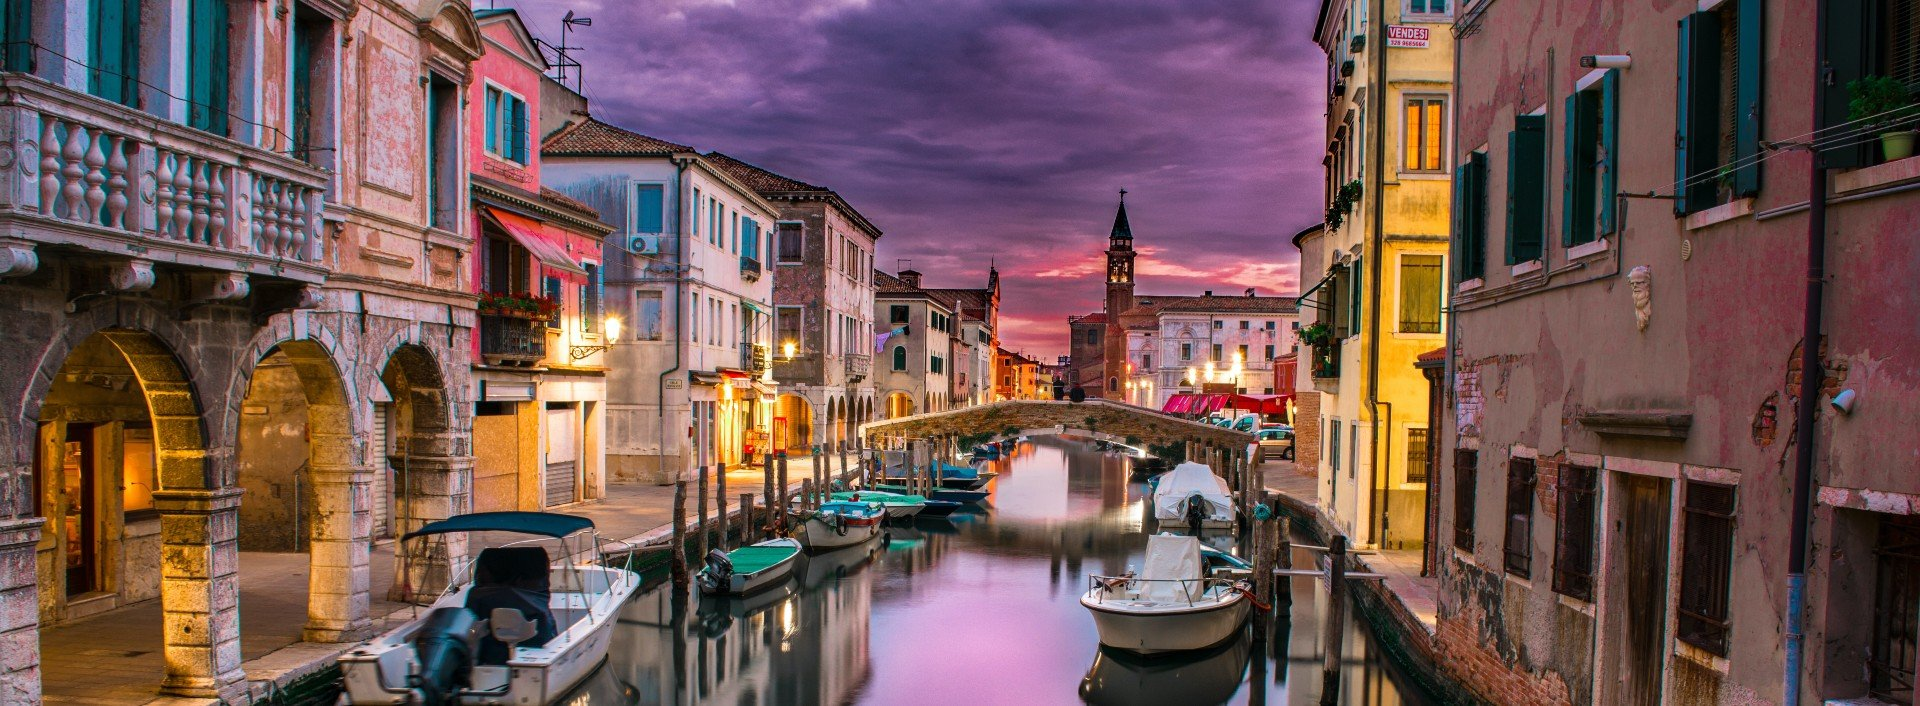 Italian Loan Words in English: A canal in Venice at sunset with the sunset reflecting off the water.